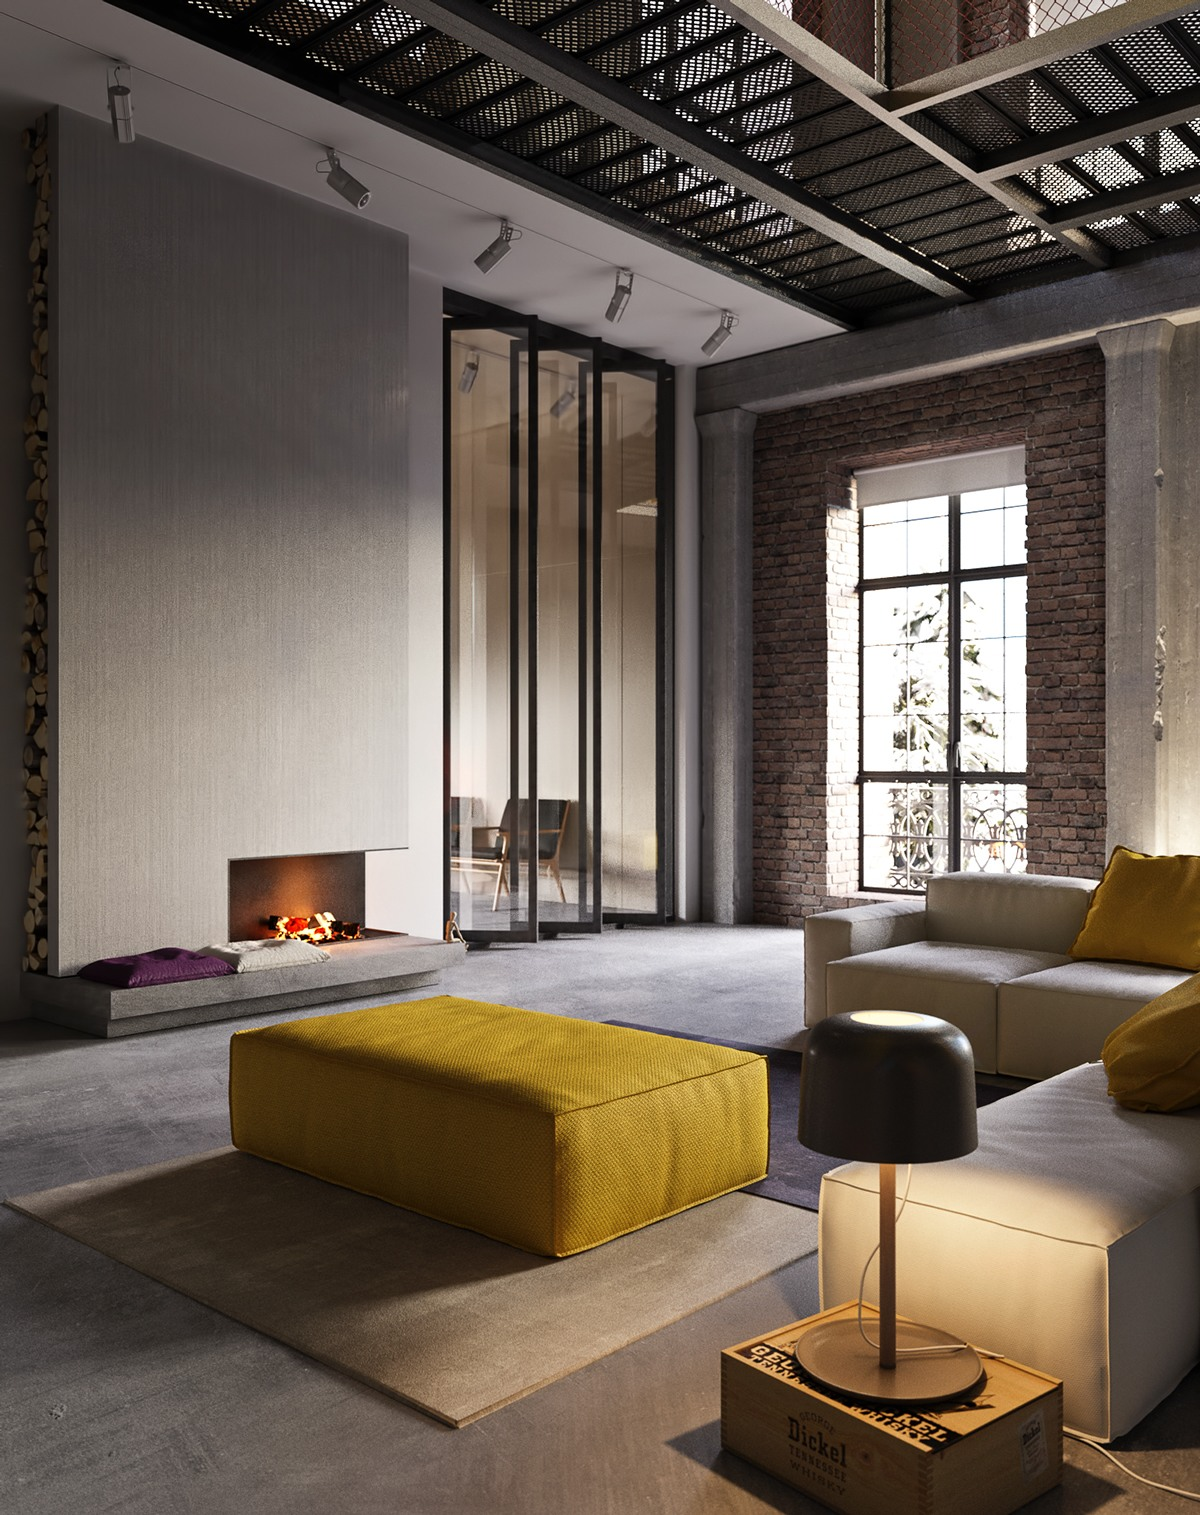 Apartment: An Industrial-Inspired Apartment With Sophisticated Style